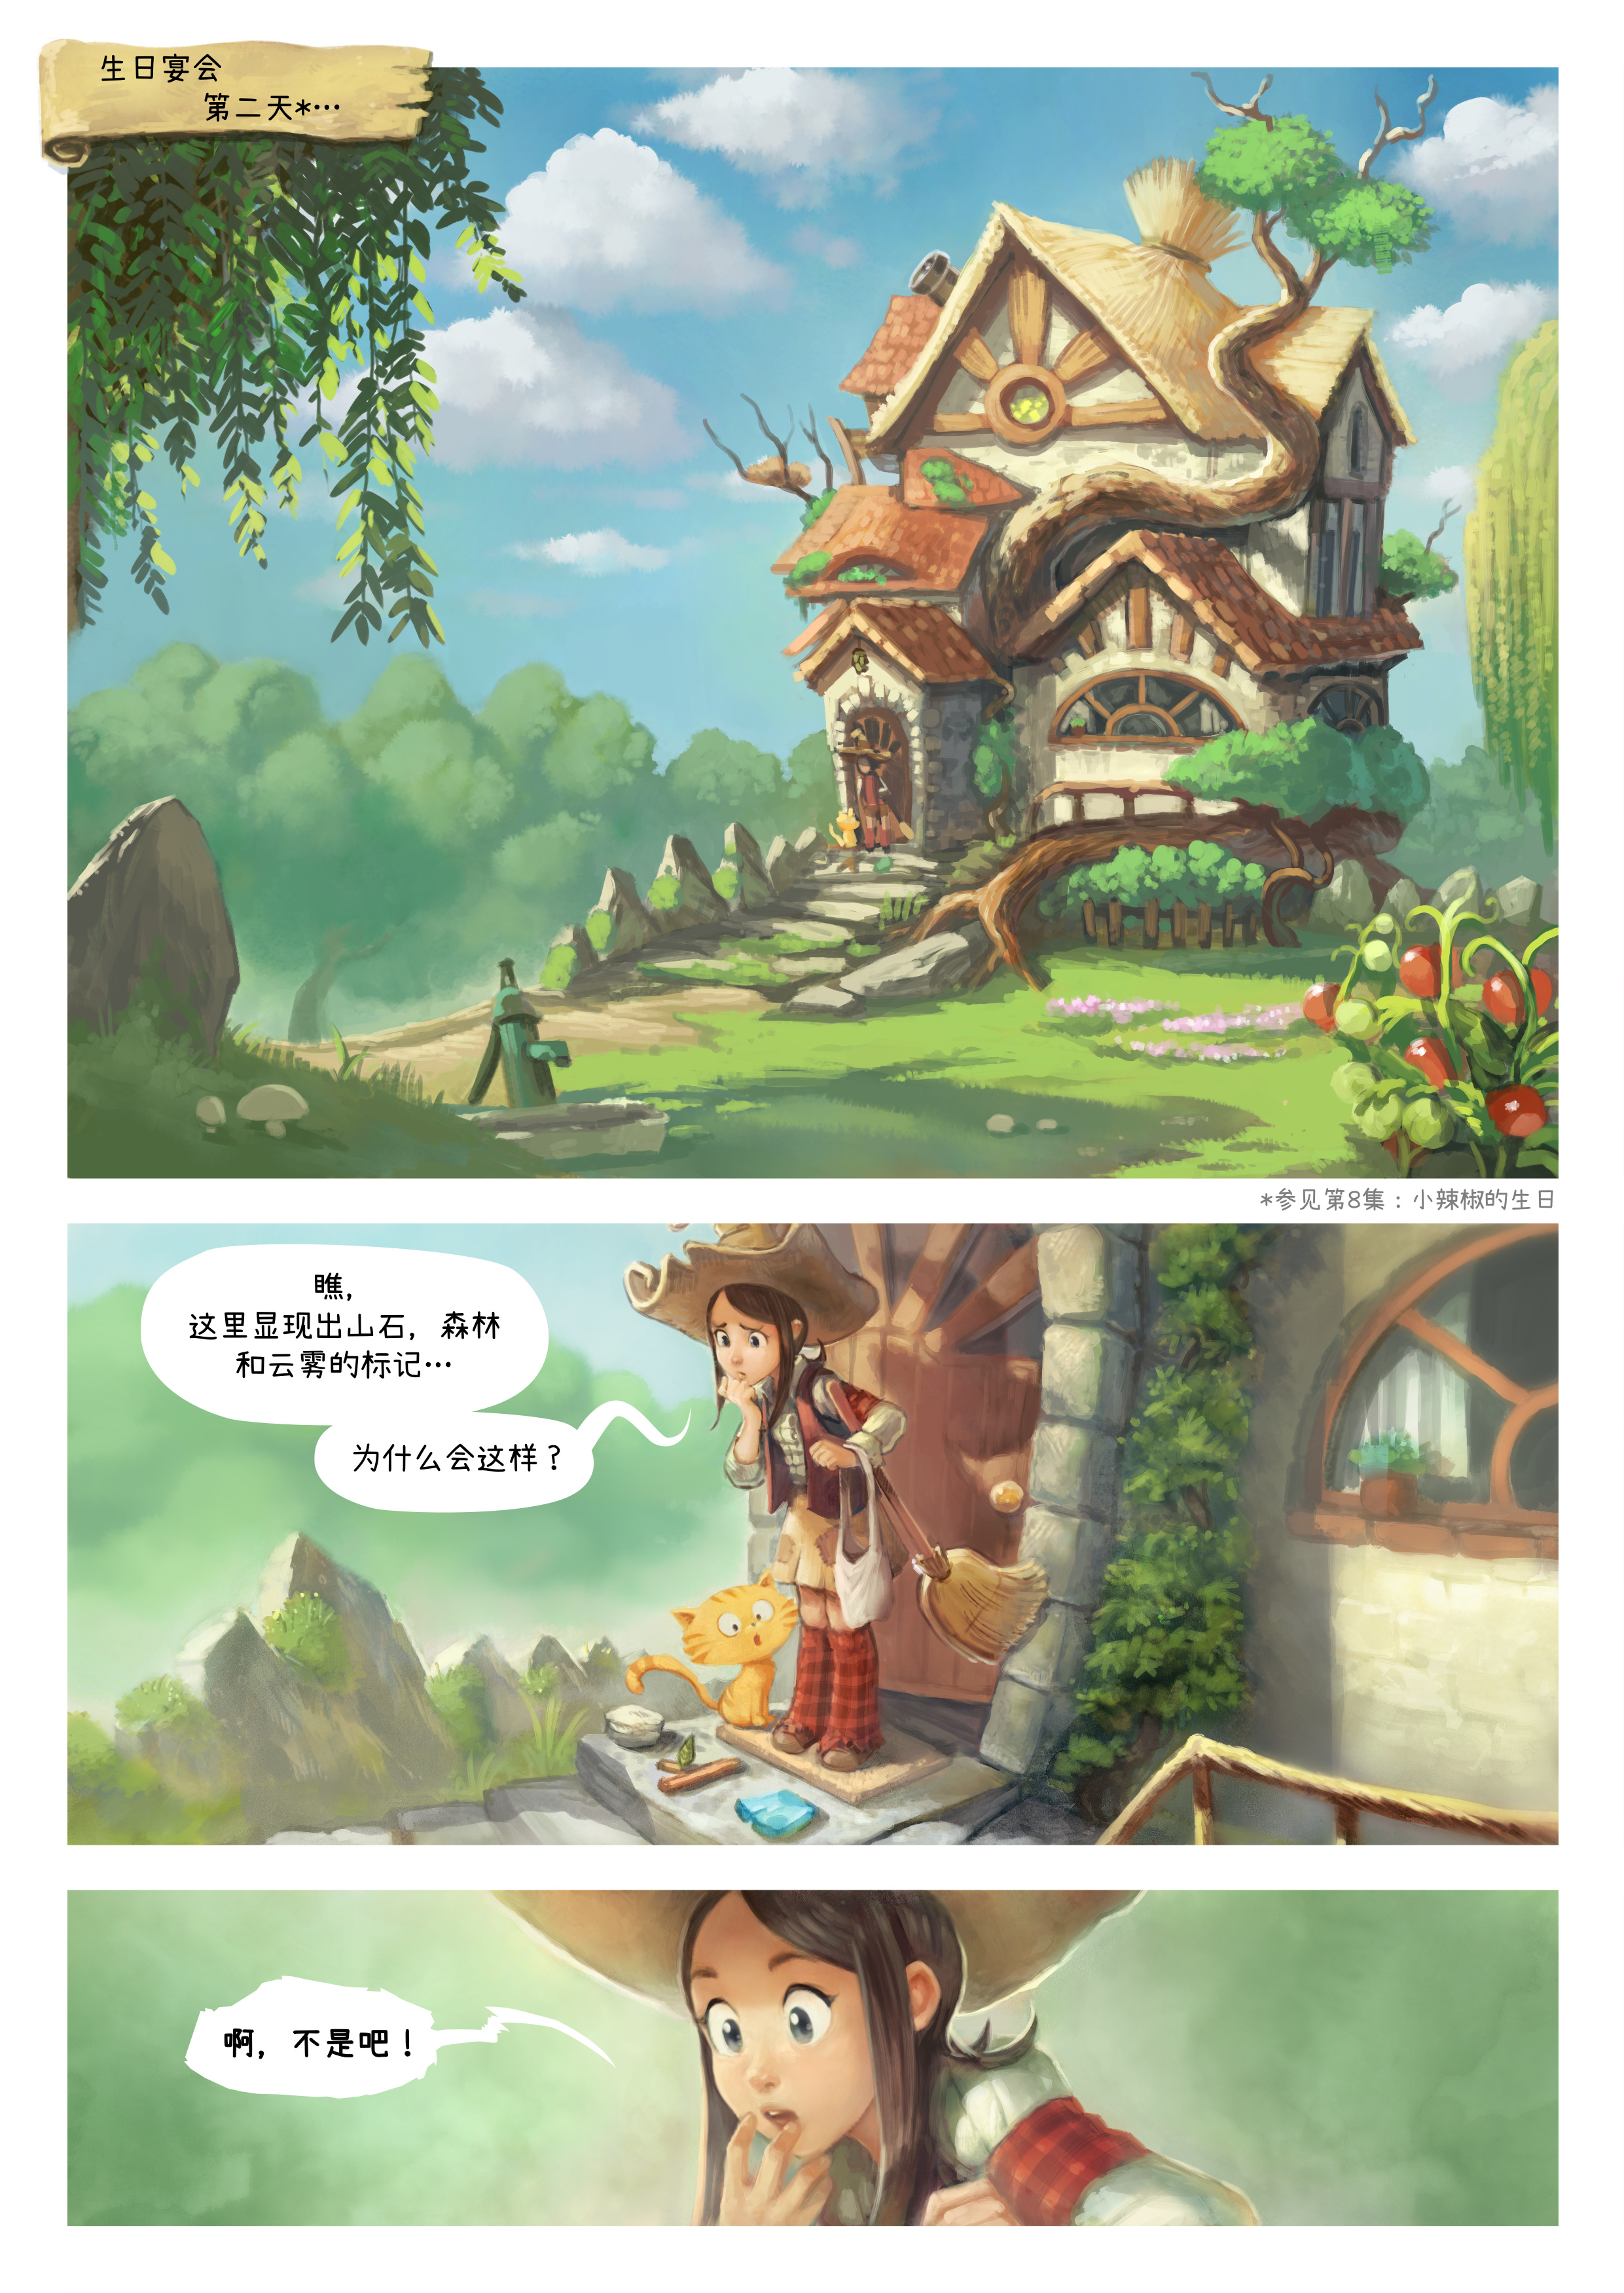 A webcomic page of Pepper&Carrot, 漫画全集 9 [cn], 页面 1